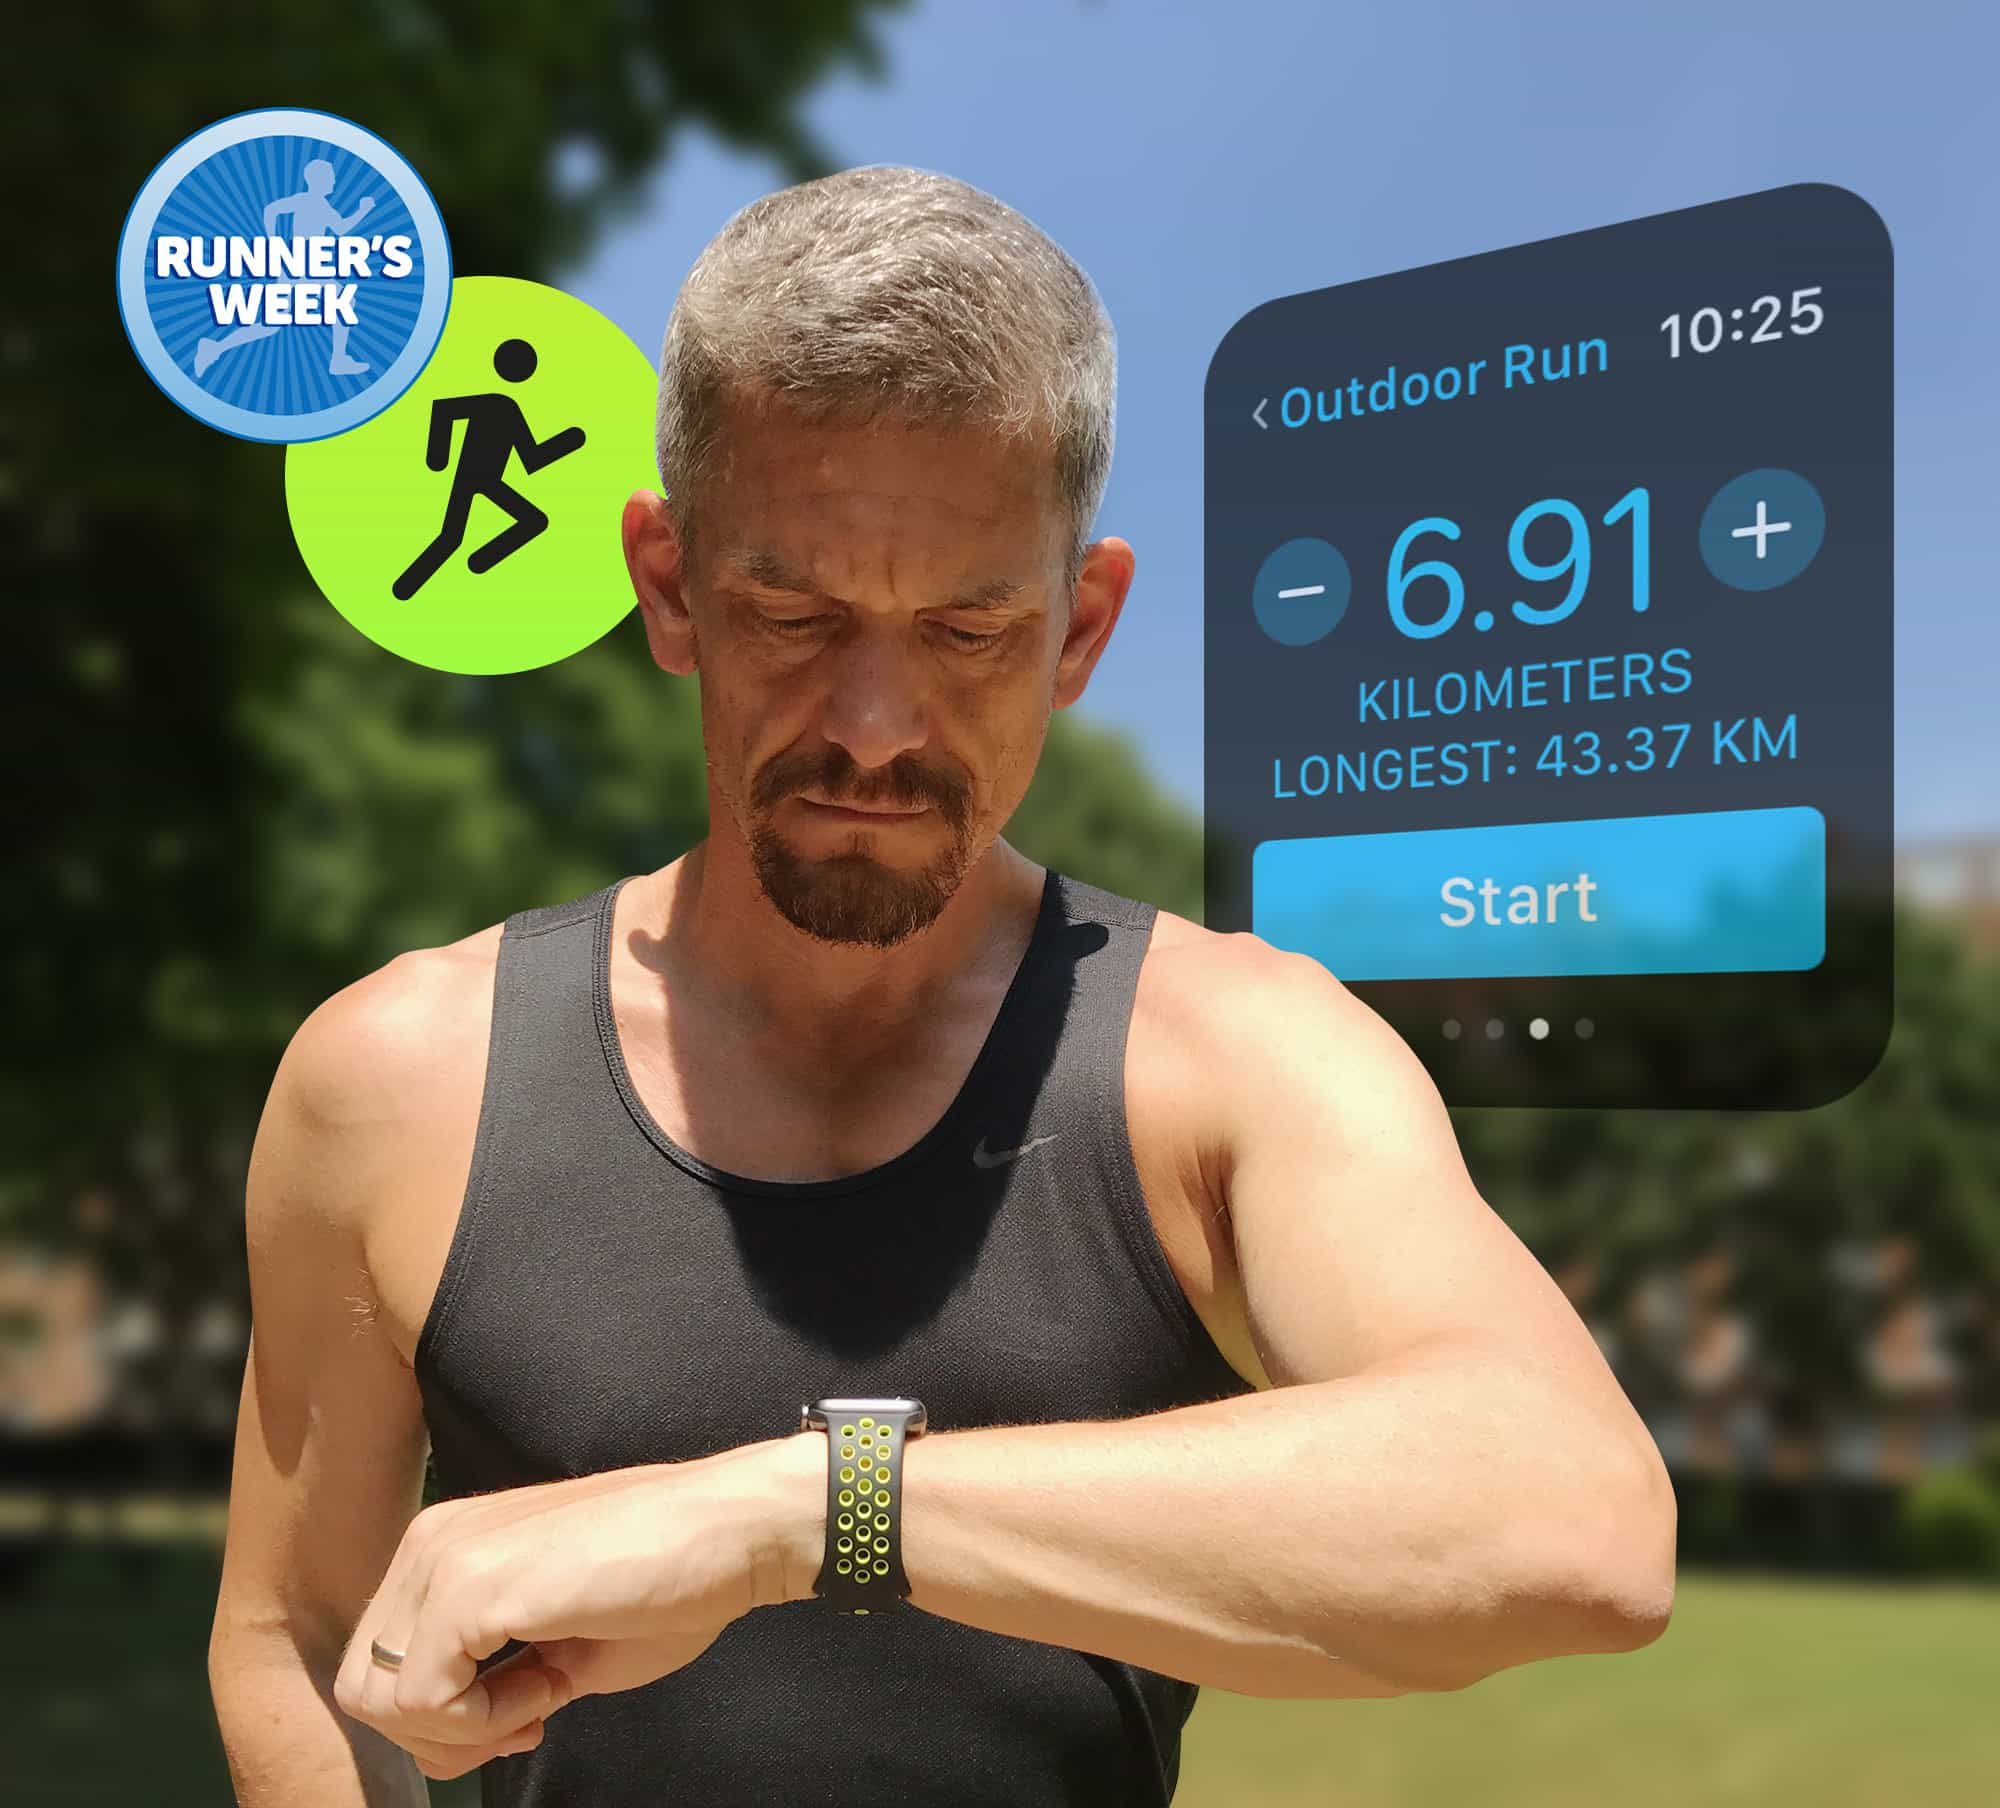 Apple's Workout app is the best watch app for runners by far. But...